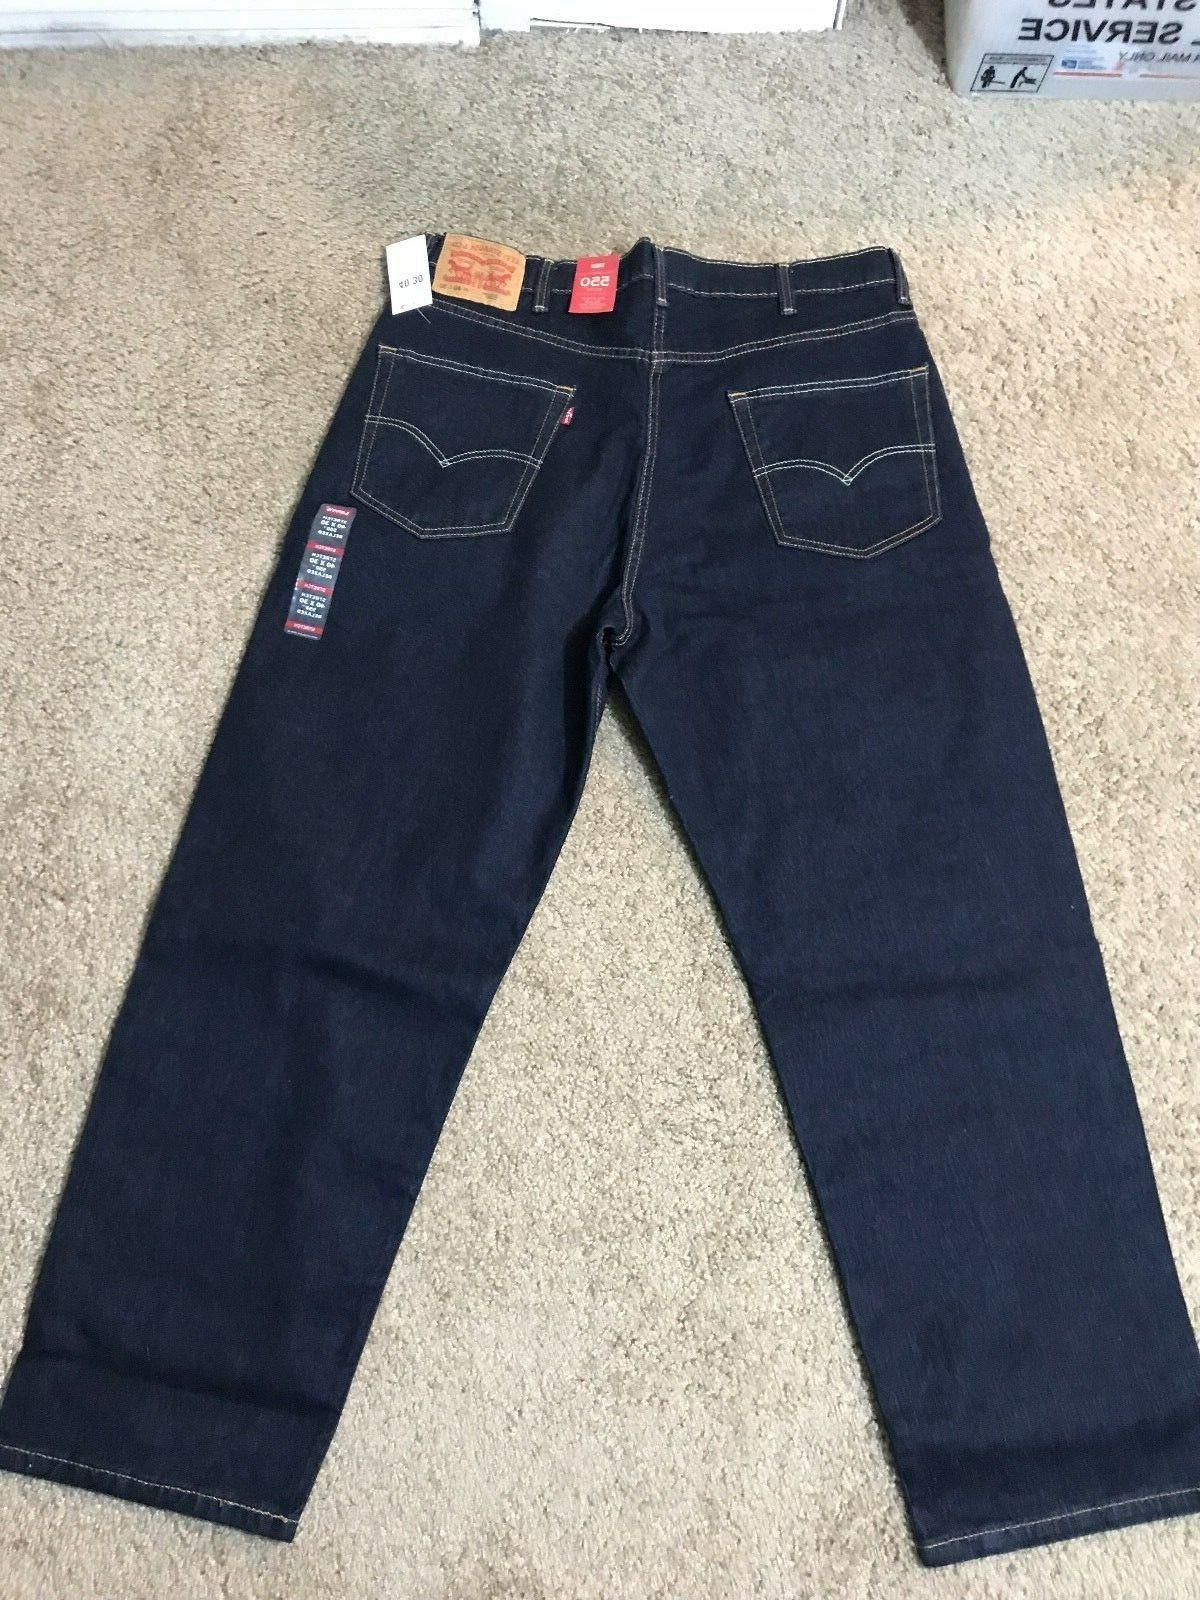 NWT Levi's Relaxed Fit Blue Jeans